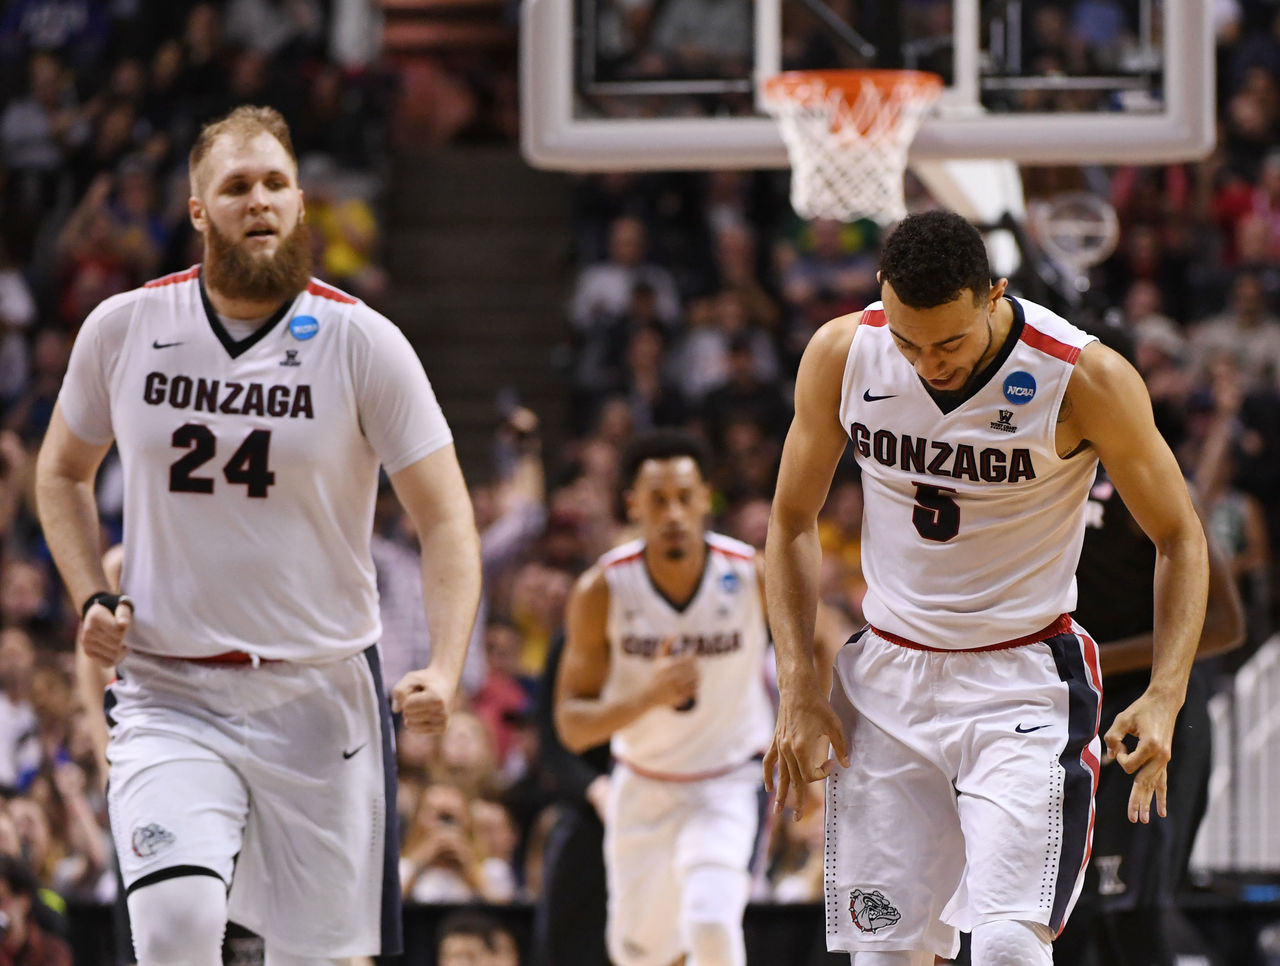 Cropped_2017-03-25t224548z_1079809684_nocid_rtrmadp_3_ncaa-basketball-ncaa-tournament-west-regional-gonzaga-vs-xavier